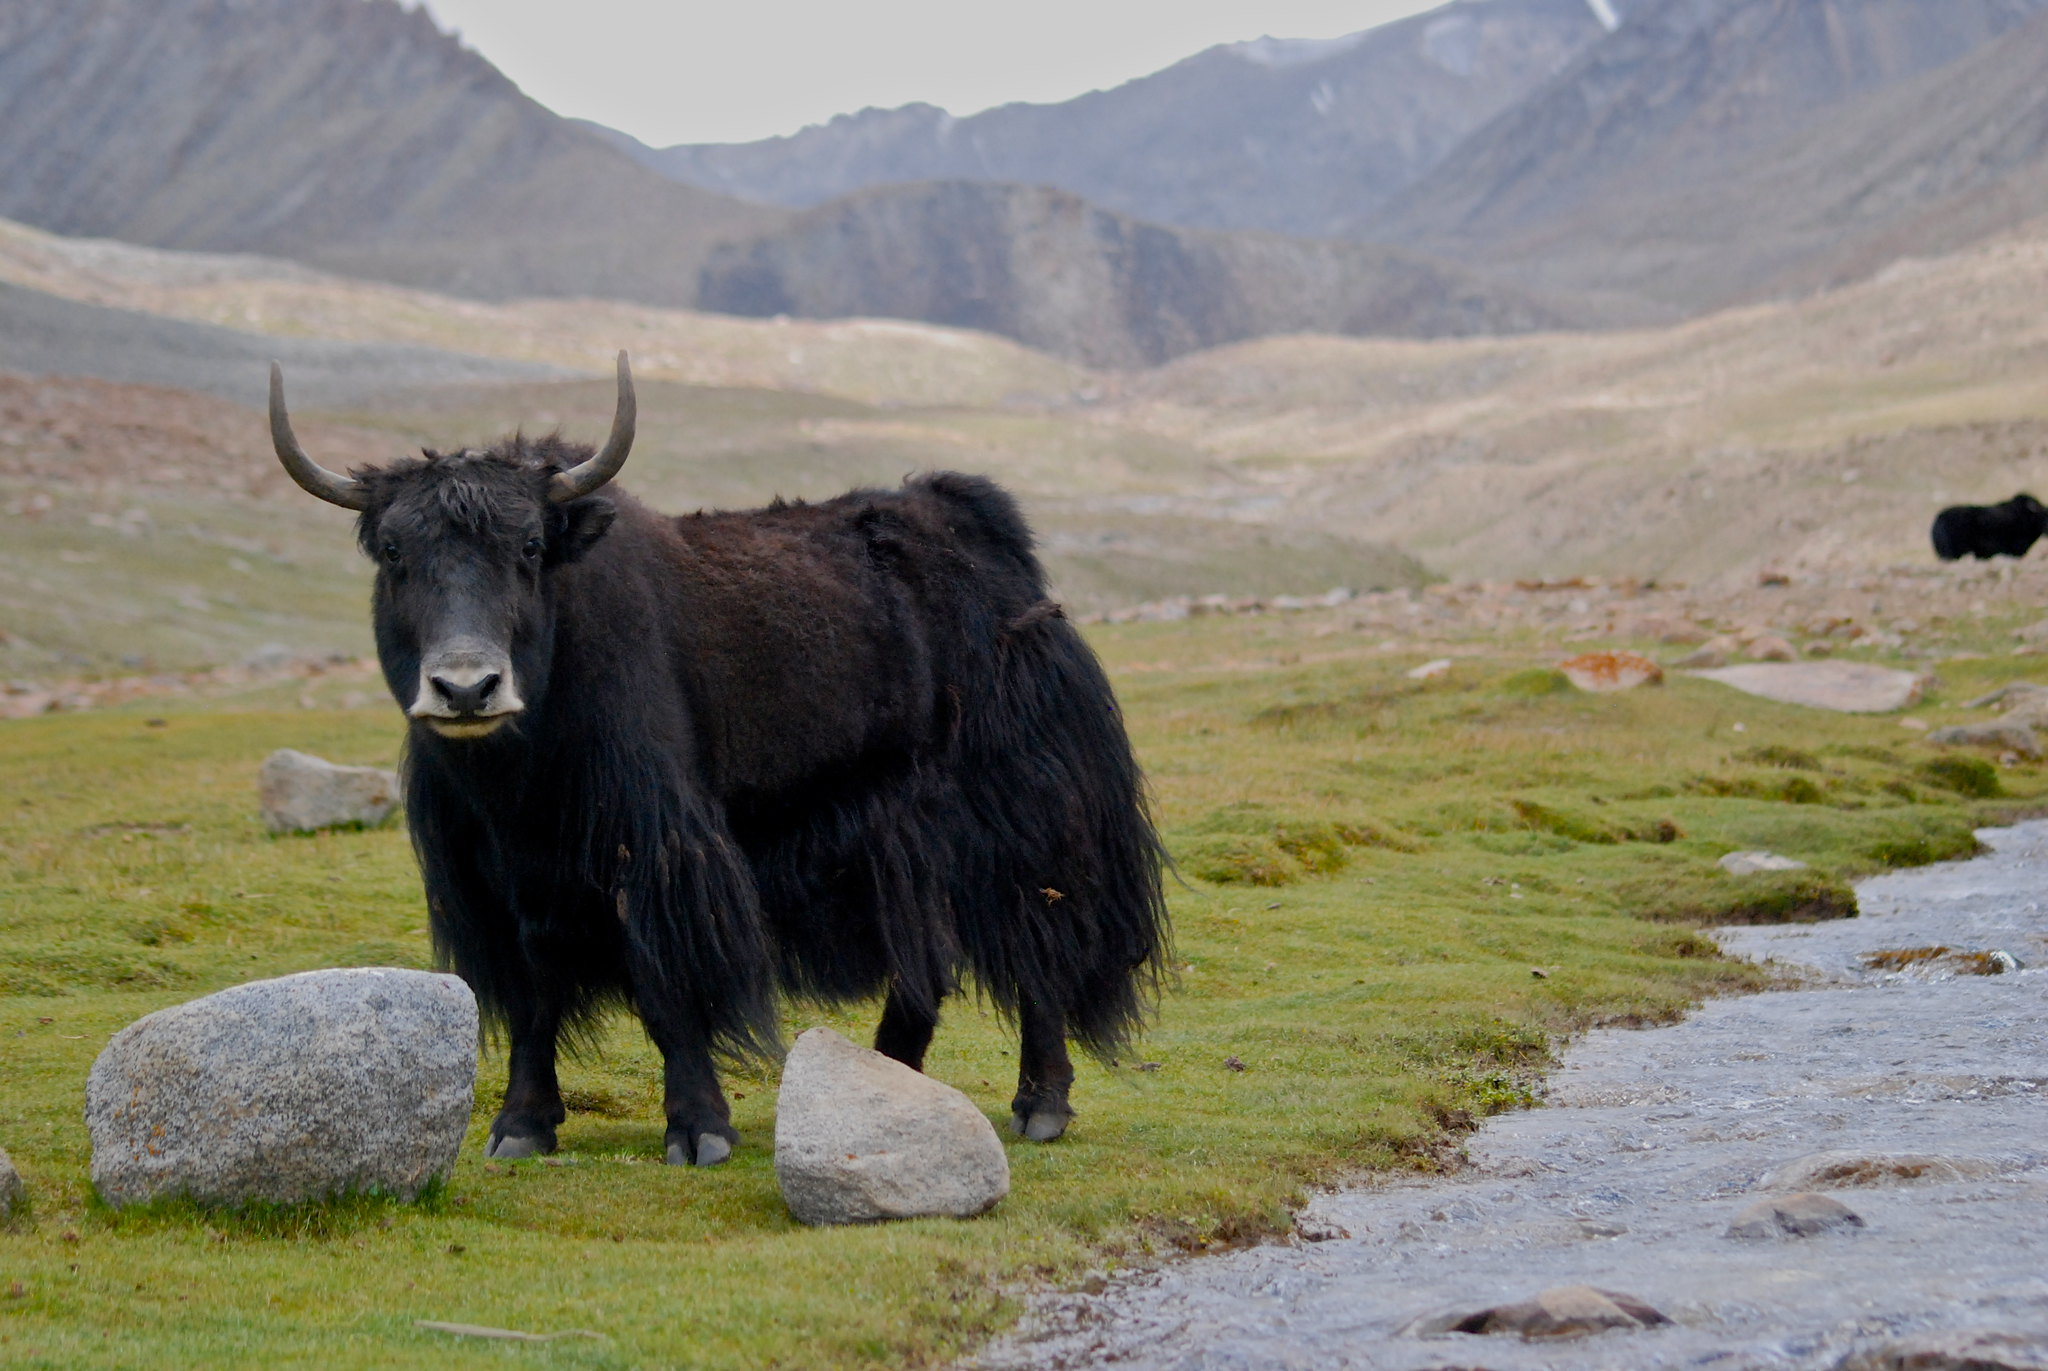 Ode to the Yak